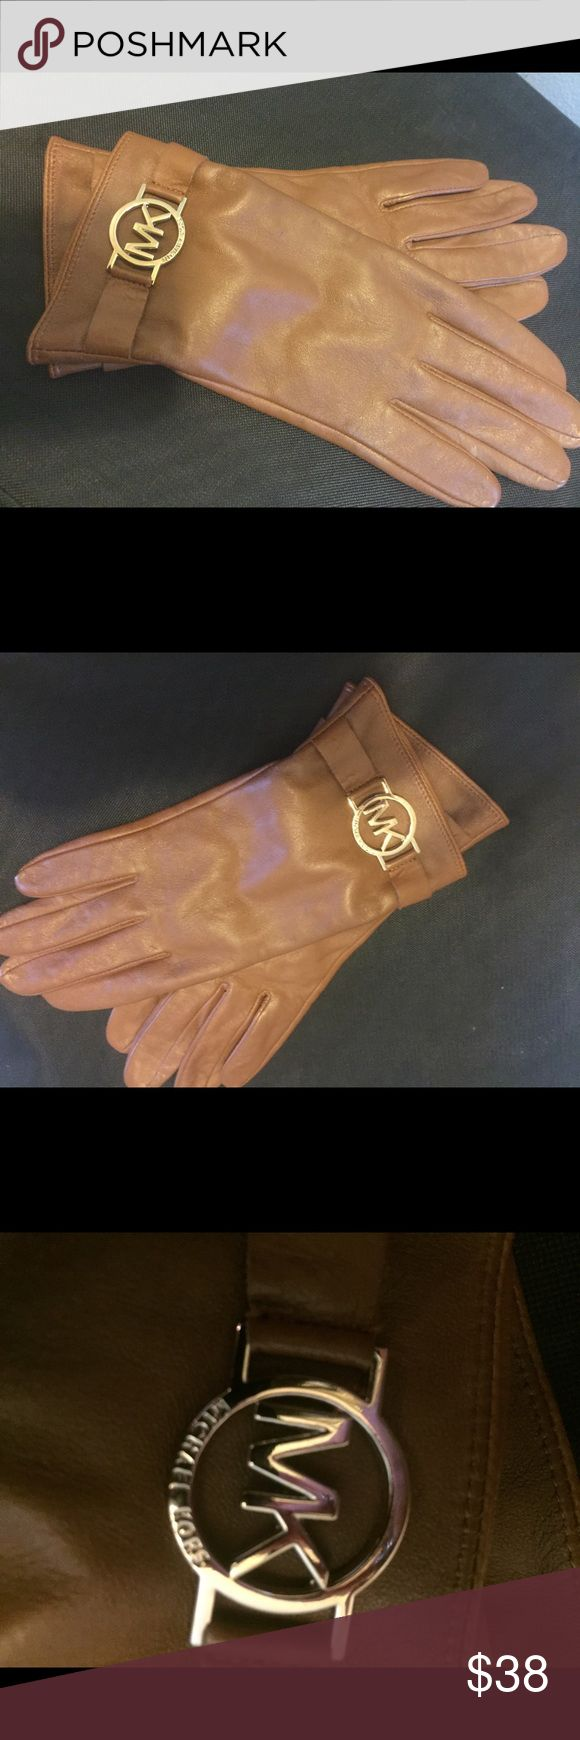 Michael Kors leather camel gloves Size M, beautiful camel color, gold embellishment, fashion gloves Michael Kors Accessories Gloves & Mittens